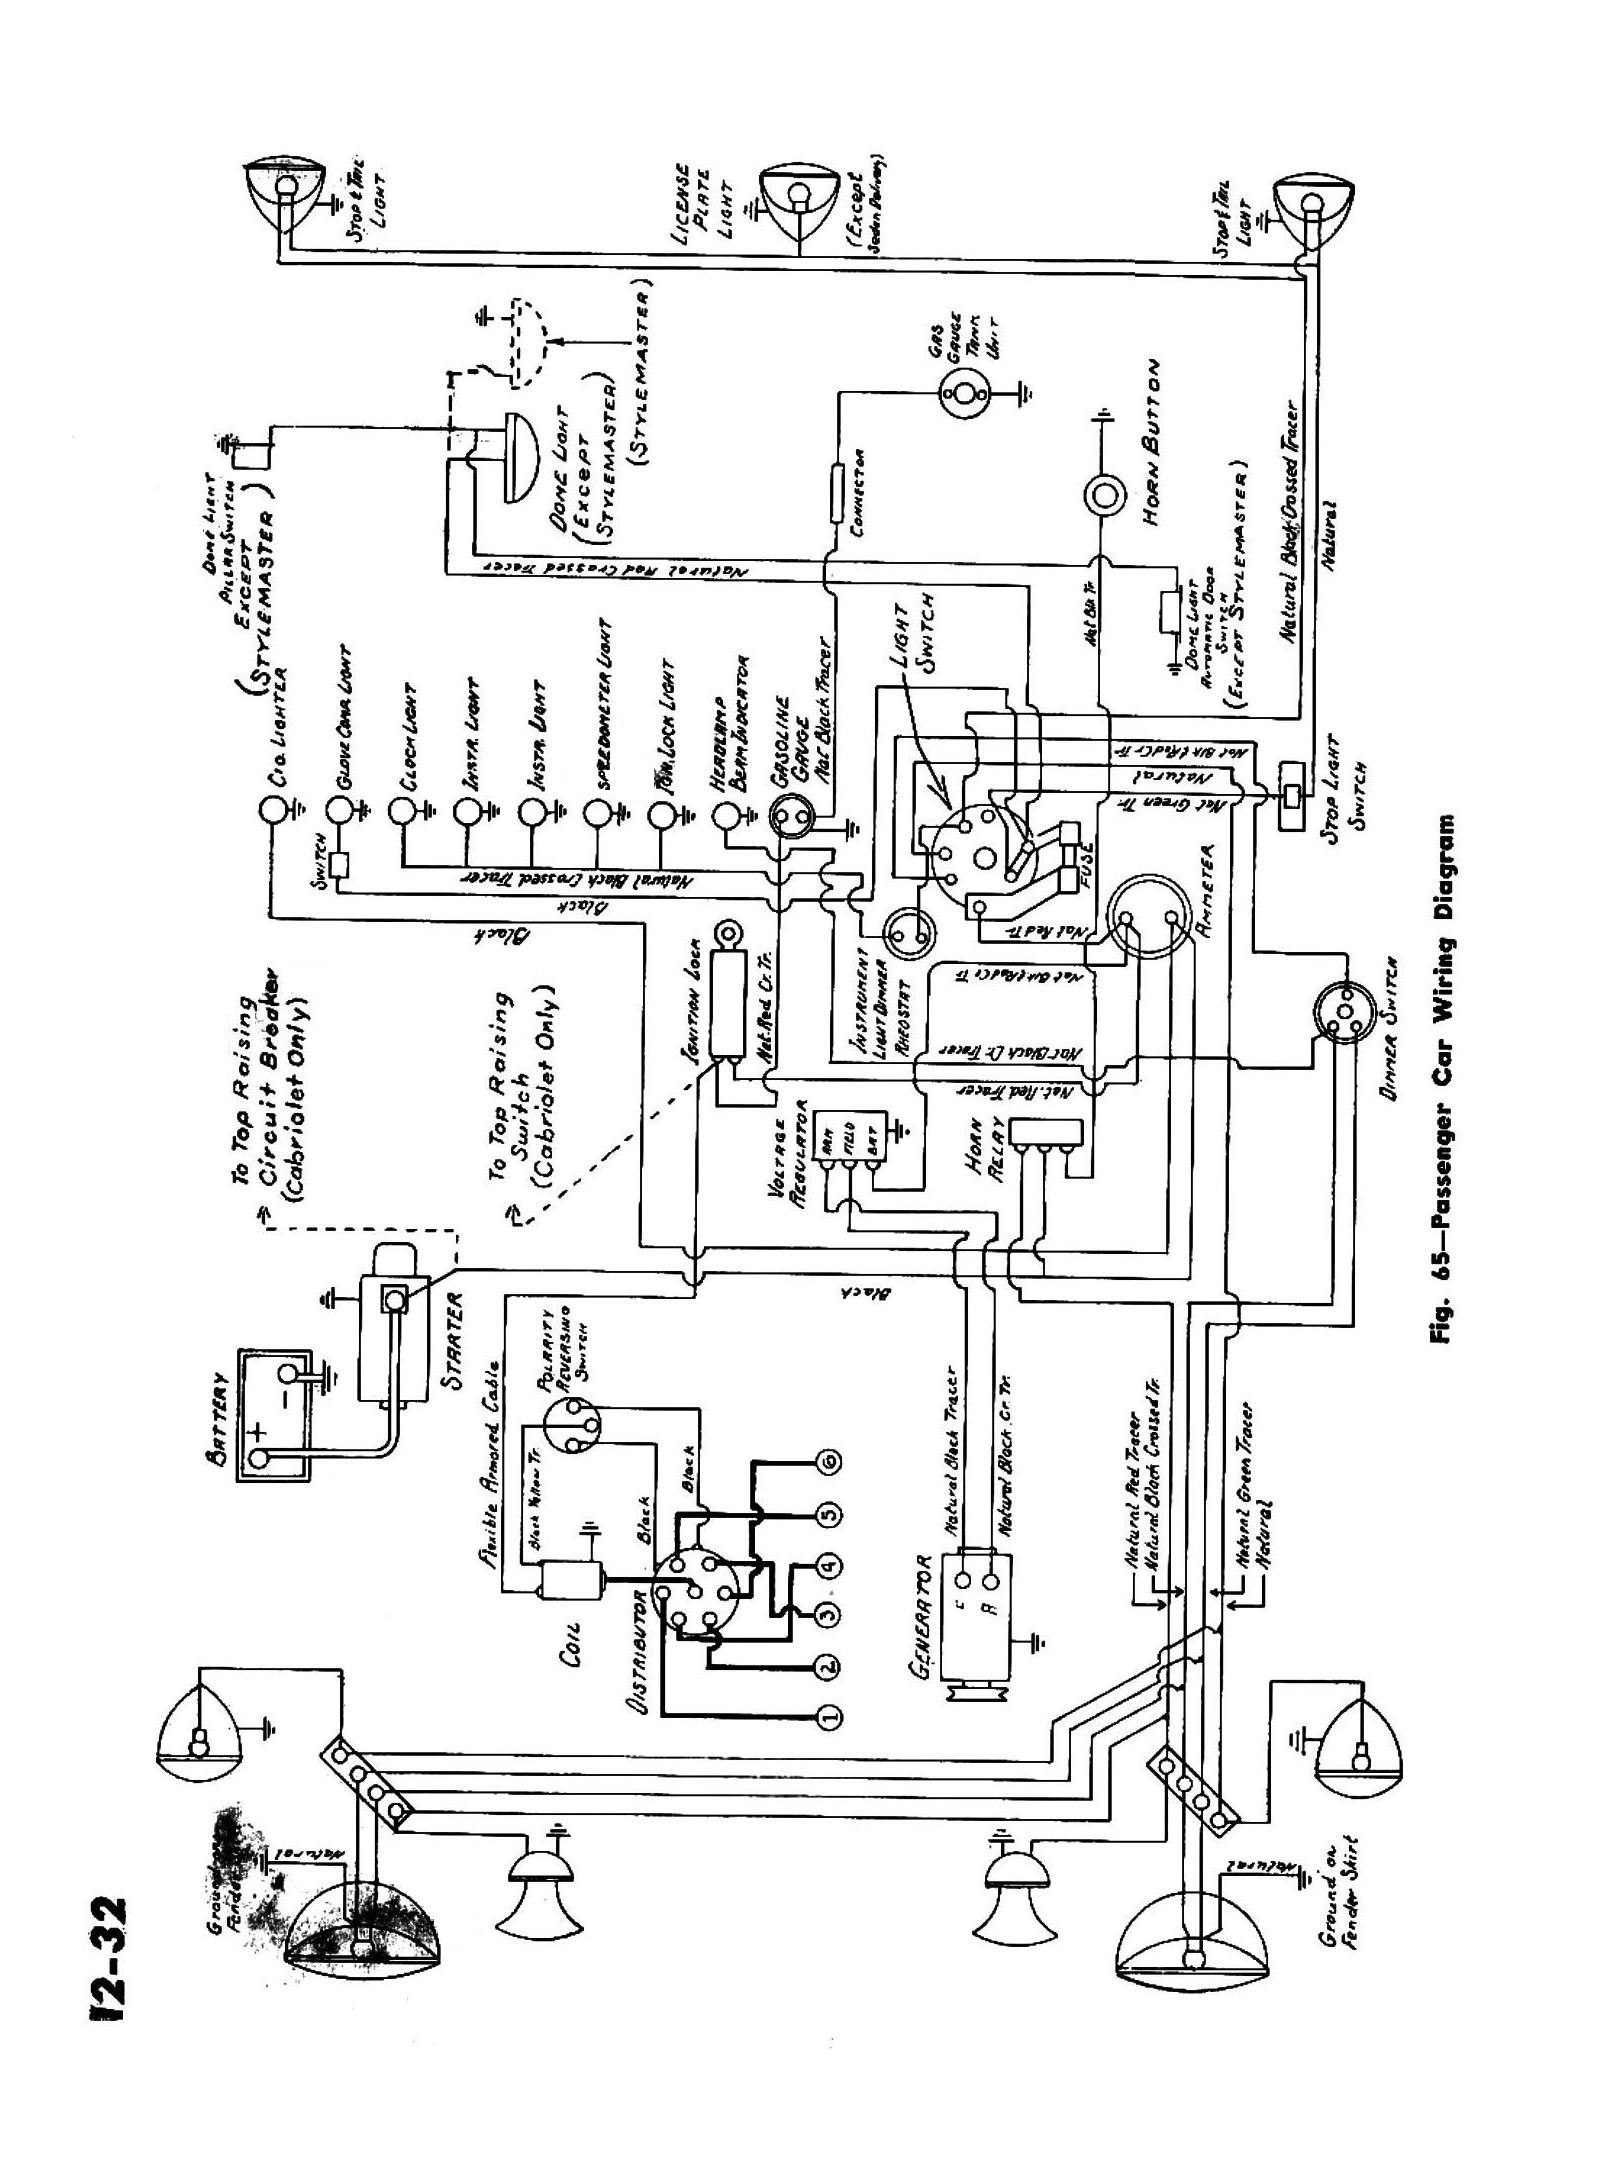 chevy wiring diagrams 1996 ford ranger wiring diagram 1947, 1947 car wiring  · 1947 passenger